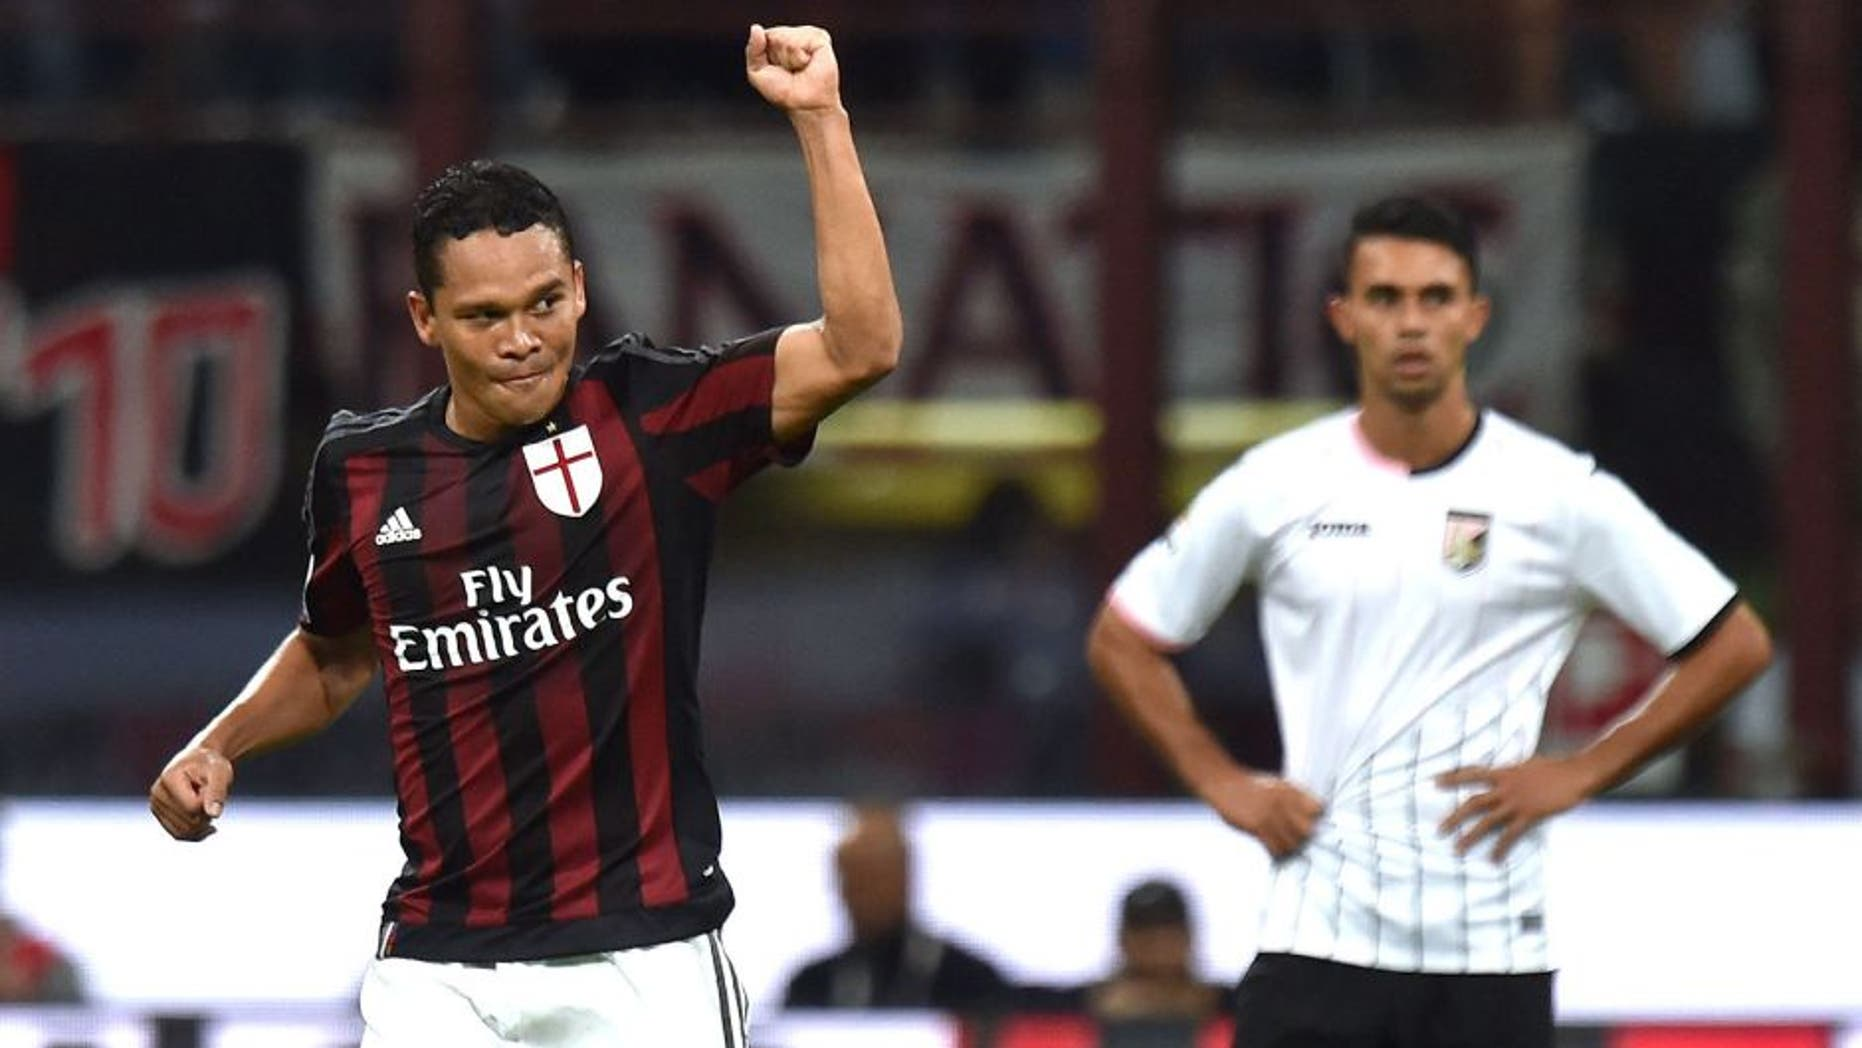 MILAN, ITALY - SEPTEMBER 19: Carlos Bacca (L) of Milan celebrates after scoring the opening goal during the Serie A match between AC Milan and US Citta di Palermo at Stadio Giuseppe Meazza on September 19, 2015 in Milan, Italy. (Photo by Tullio M. Puglia/Getty Images)